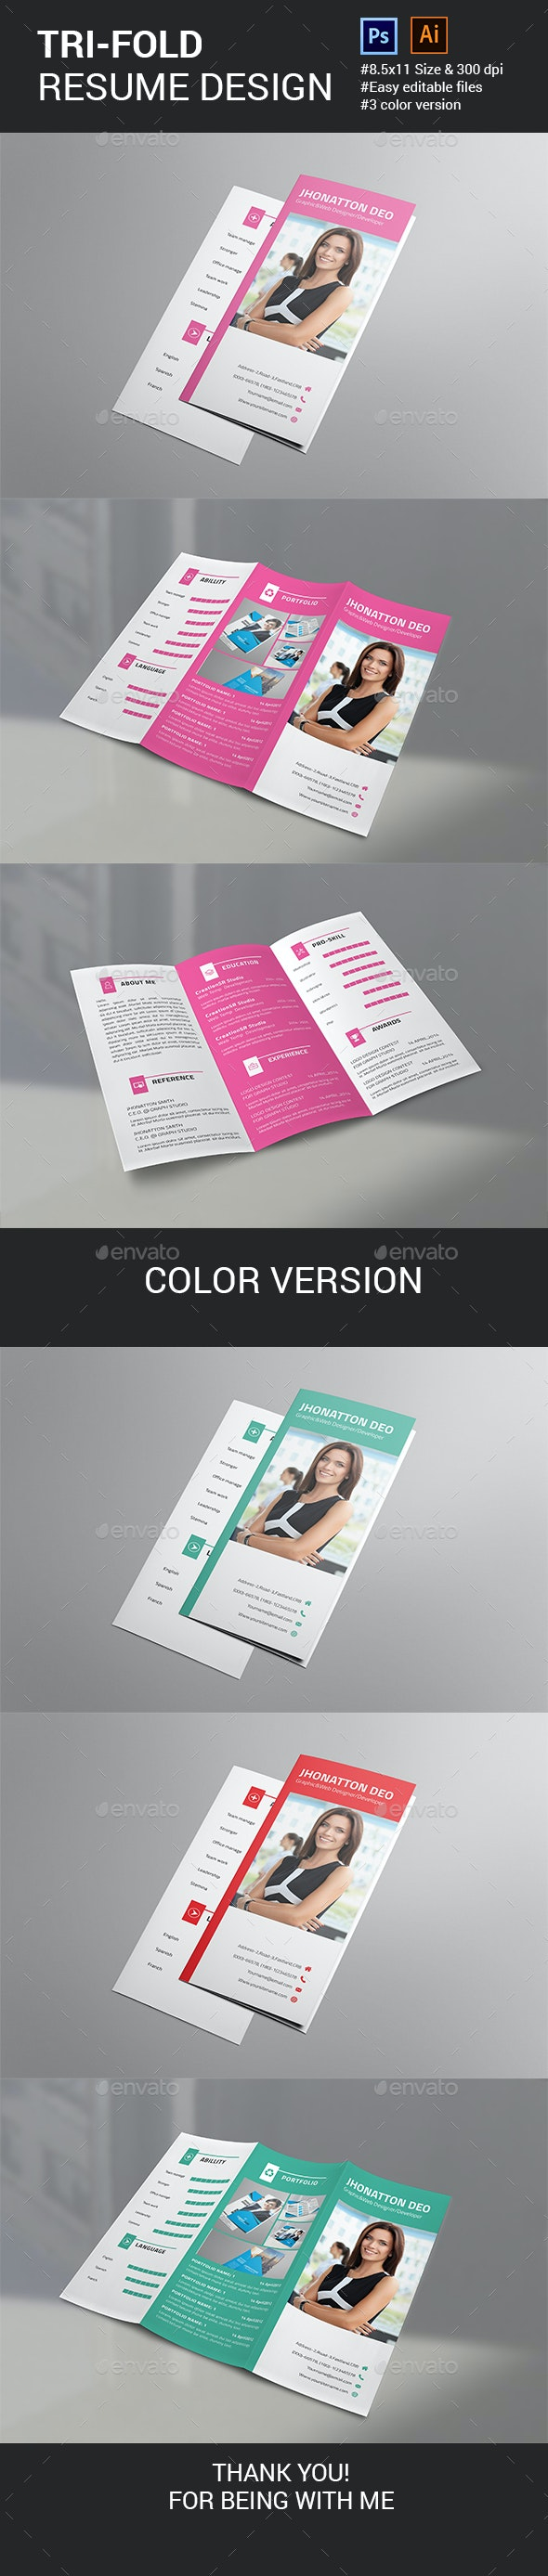 Resume Trifold Template - Resumes Stationery